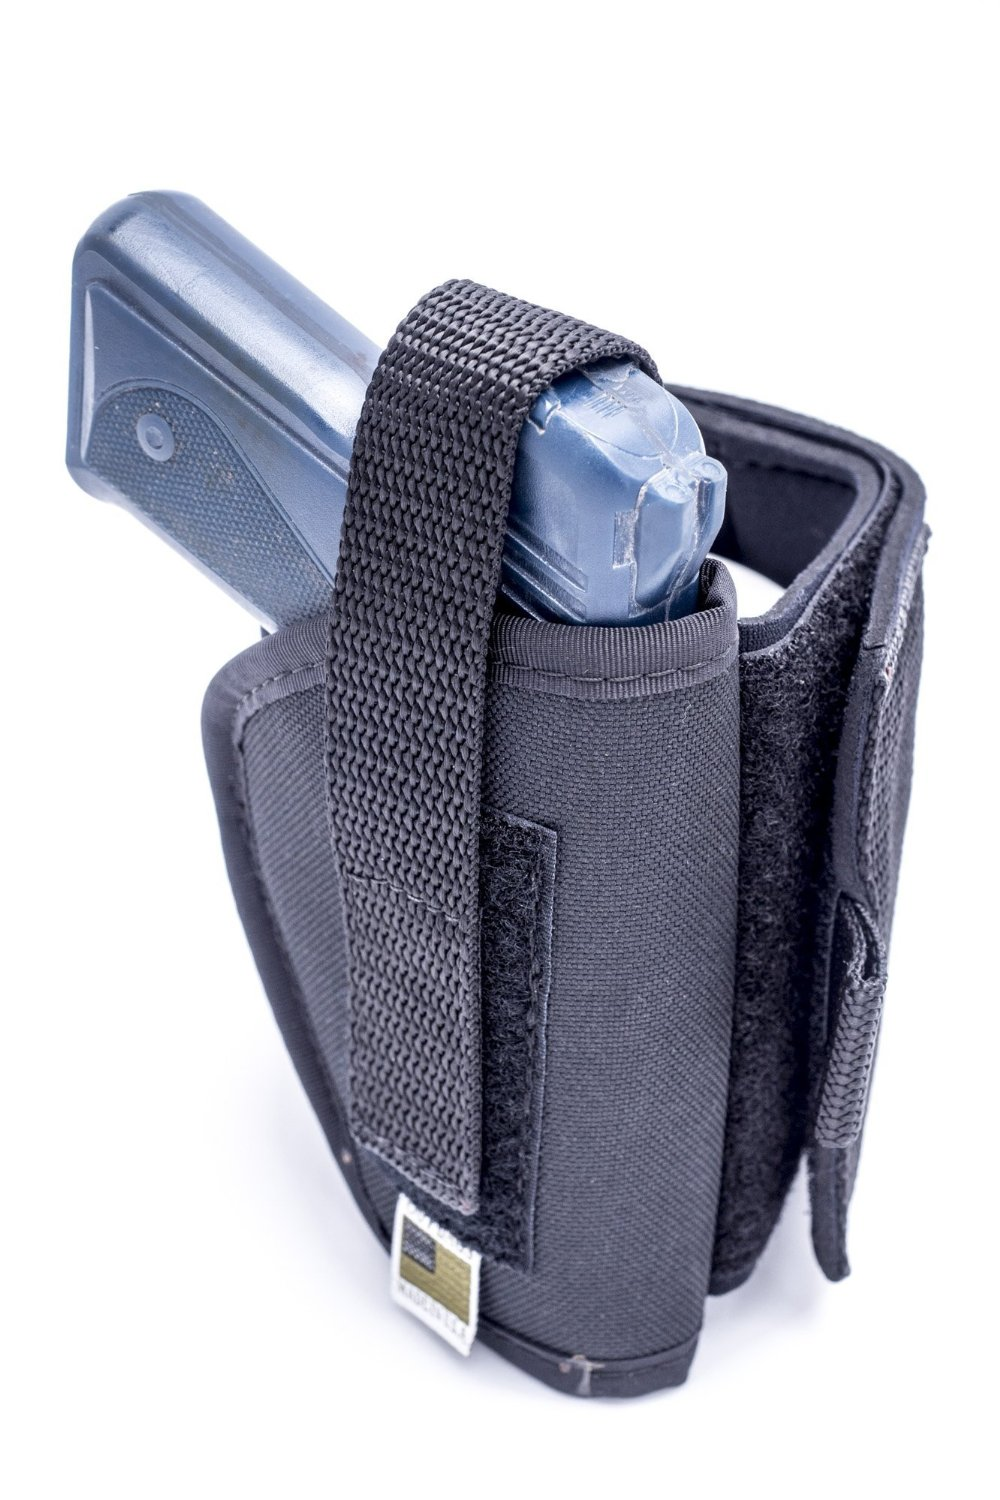 kydex ankle holster